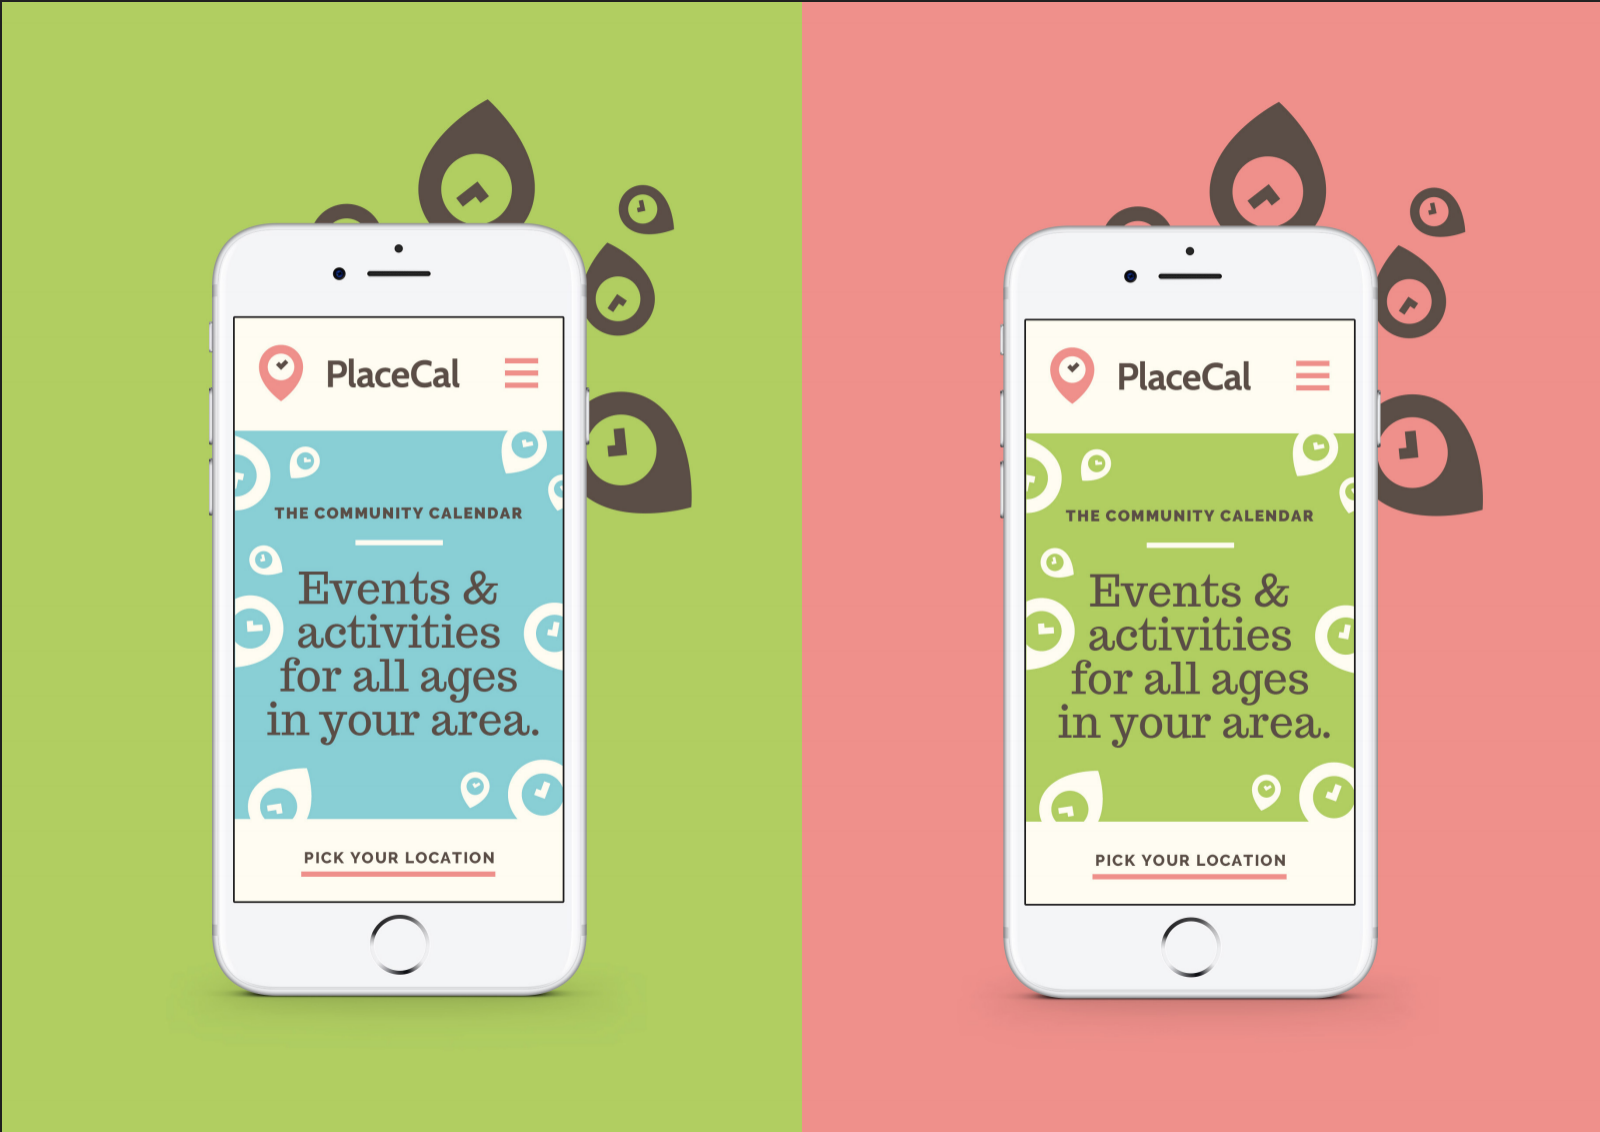 PlaceCal on a smartphone